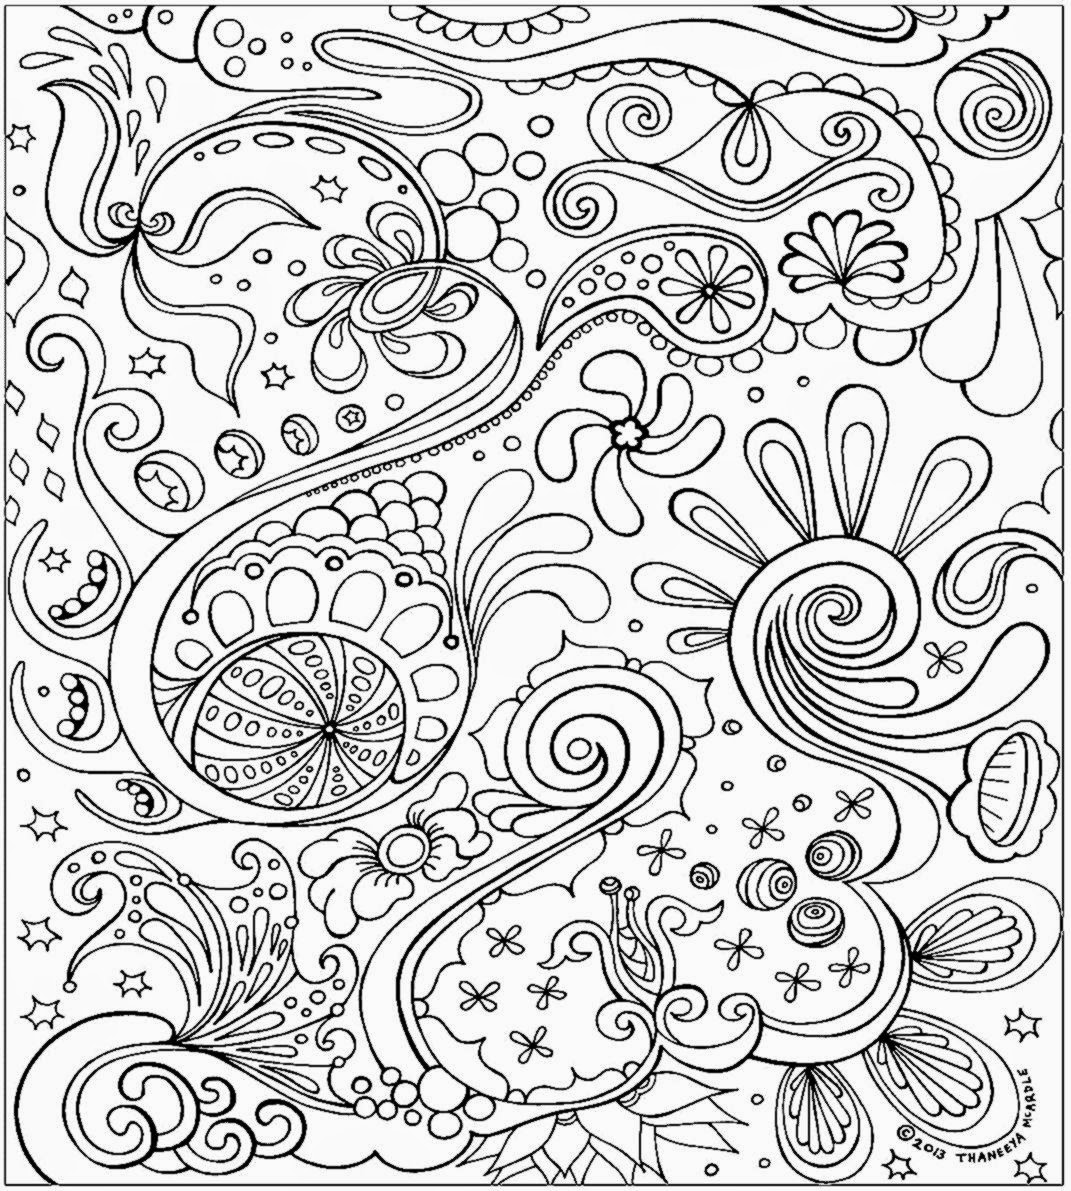 Coloring sheets for adults free coloring sheet for Adult coloring pages printable